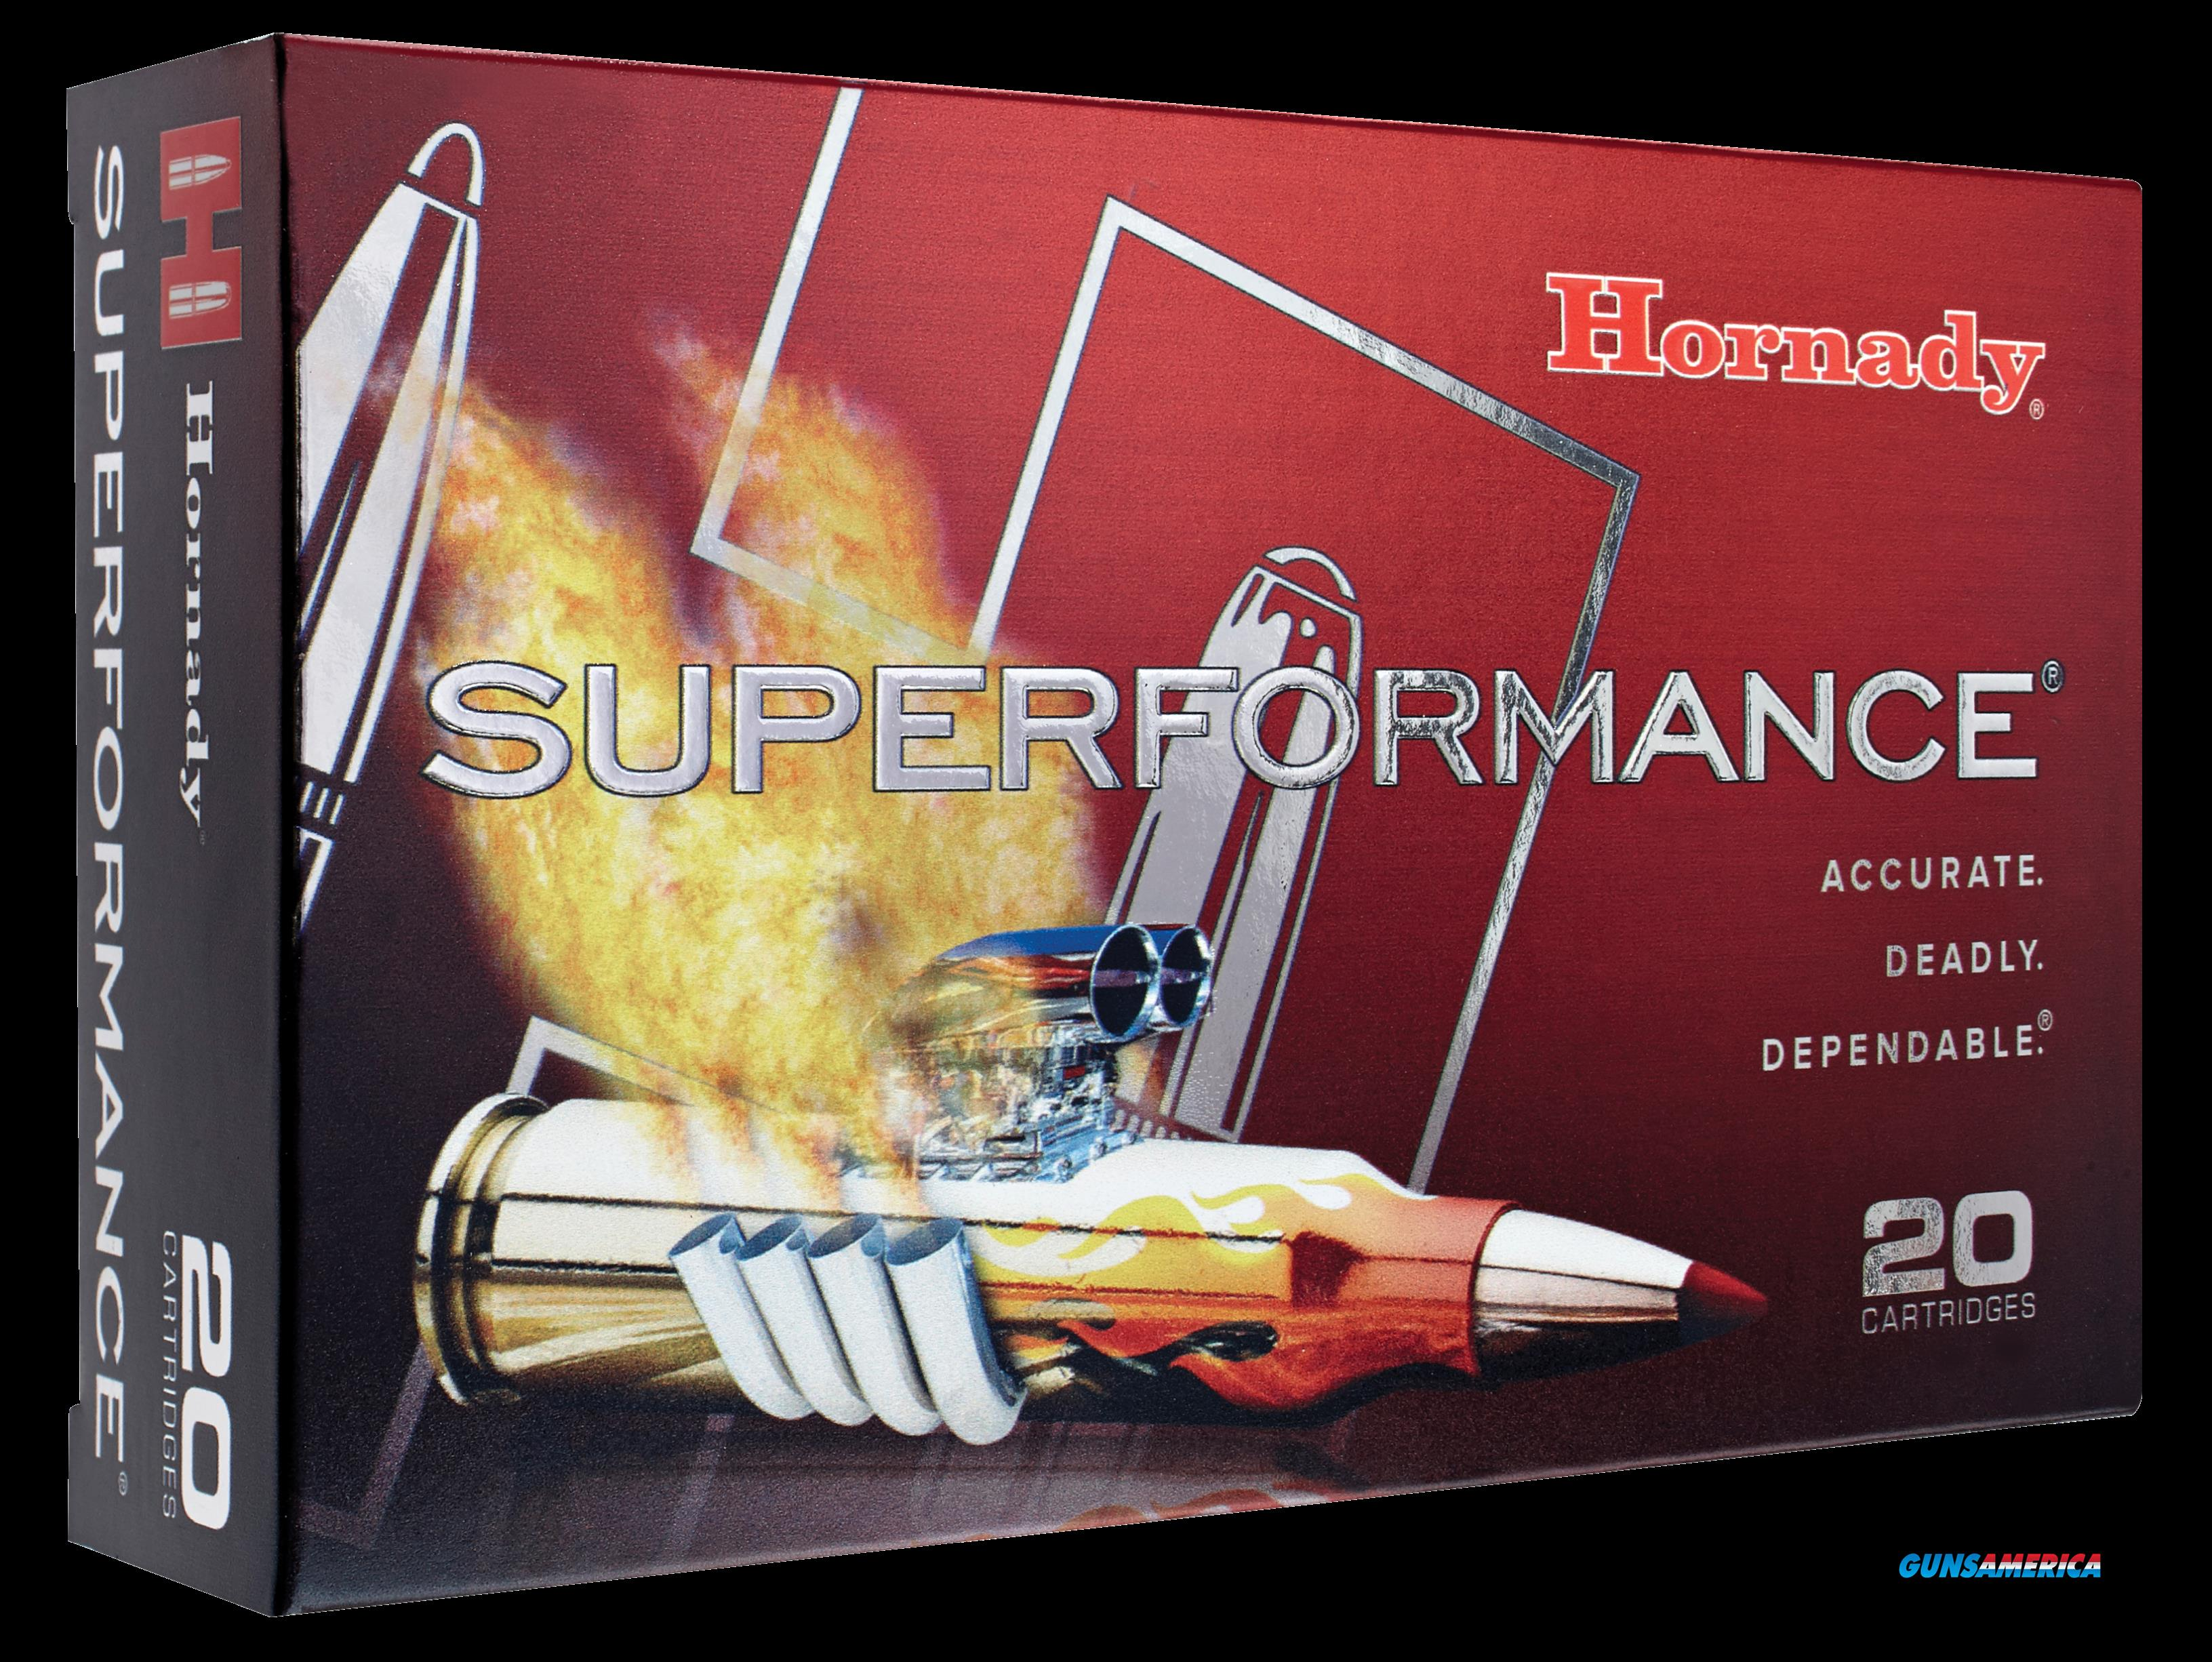 Hornady Superformance, Horn 82231 300 Rcm 150 Sst       20-10  Guns > Pistols > 1911 Pistol Copies (non-Colt)